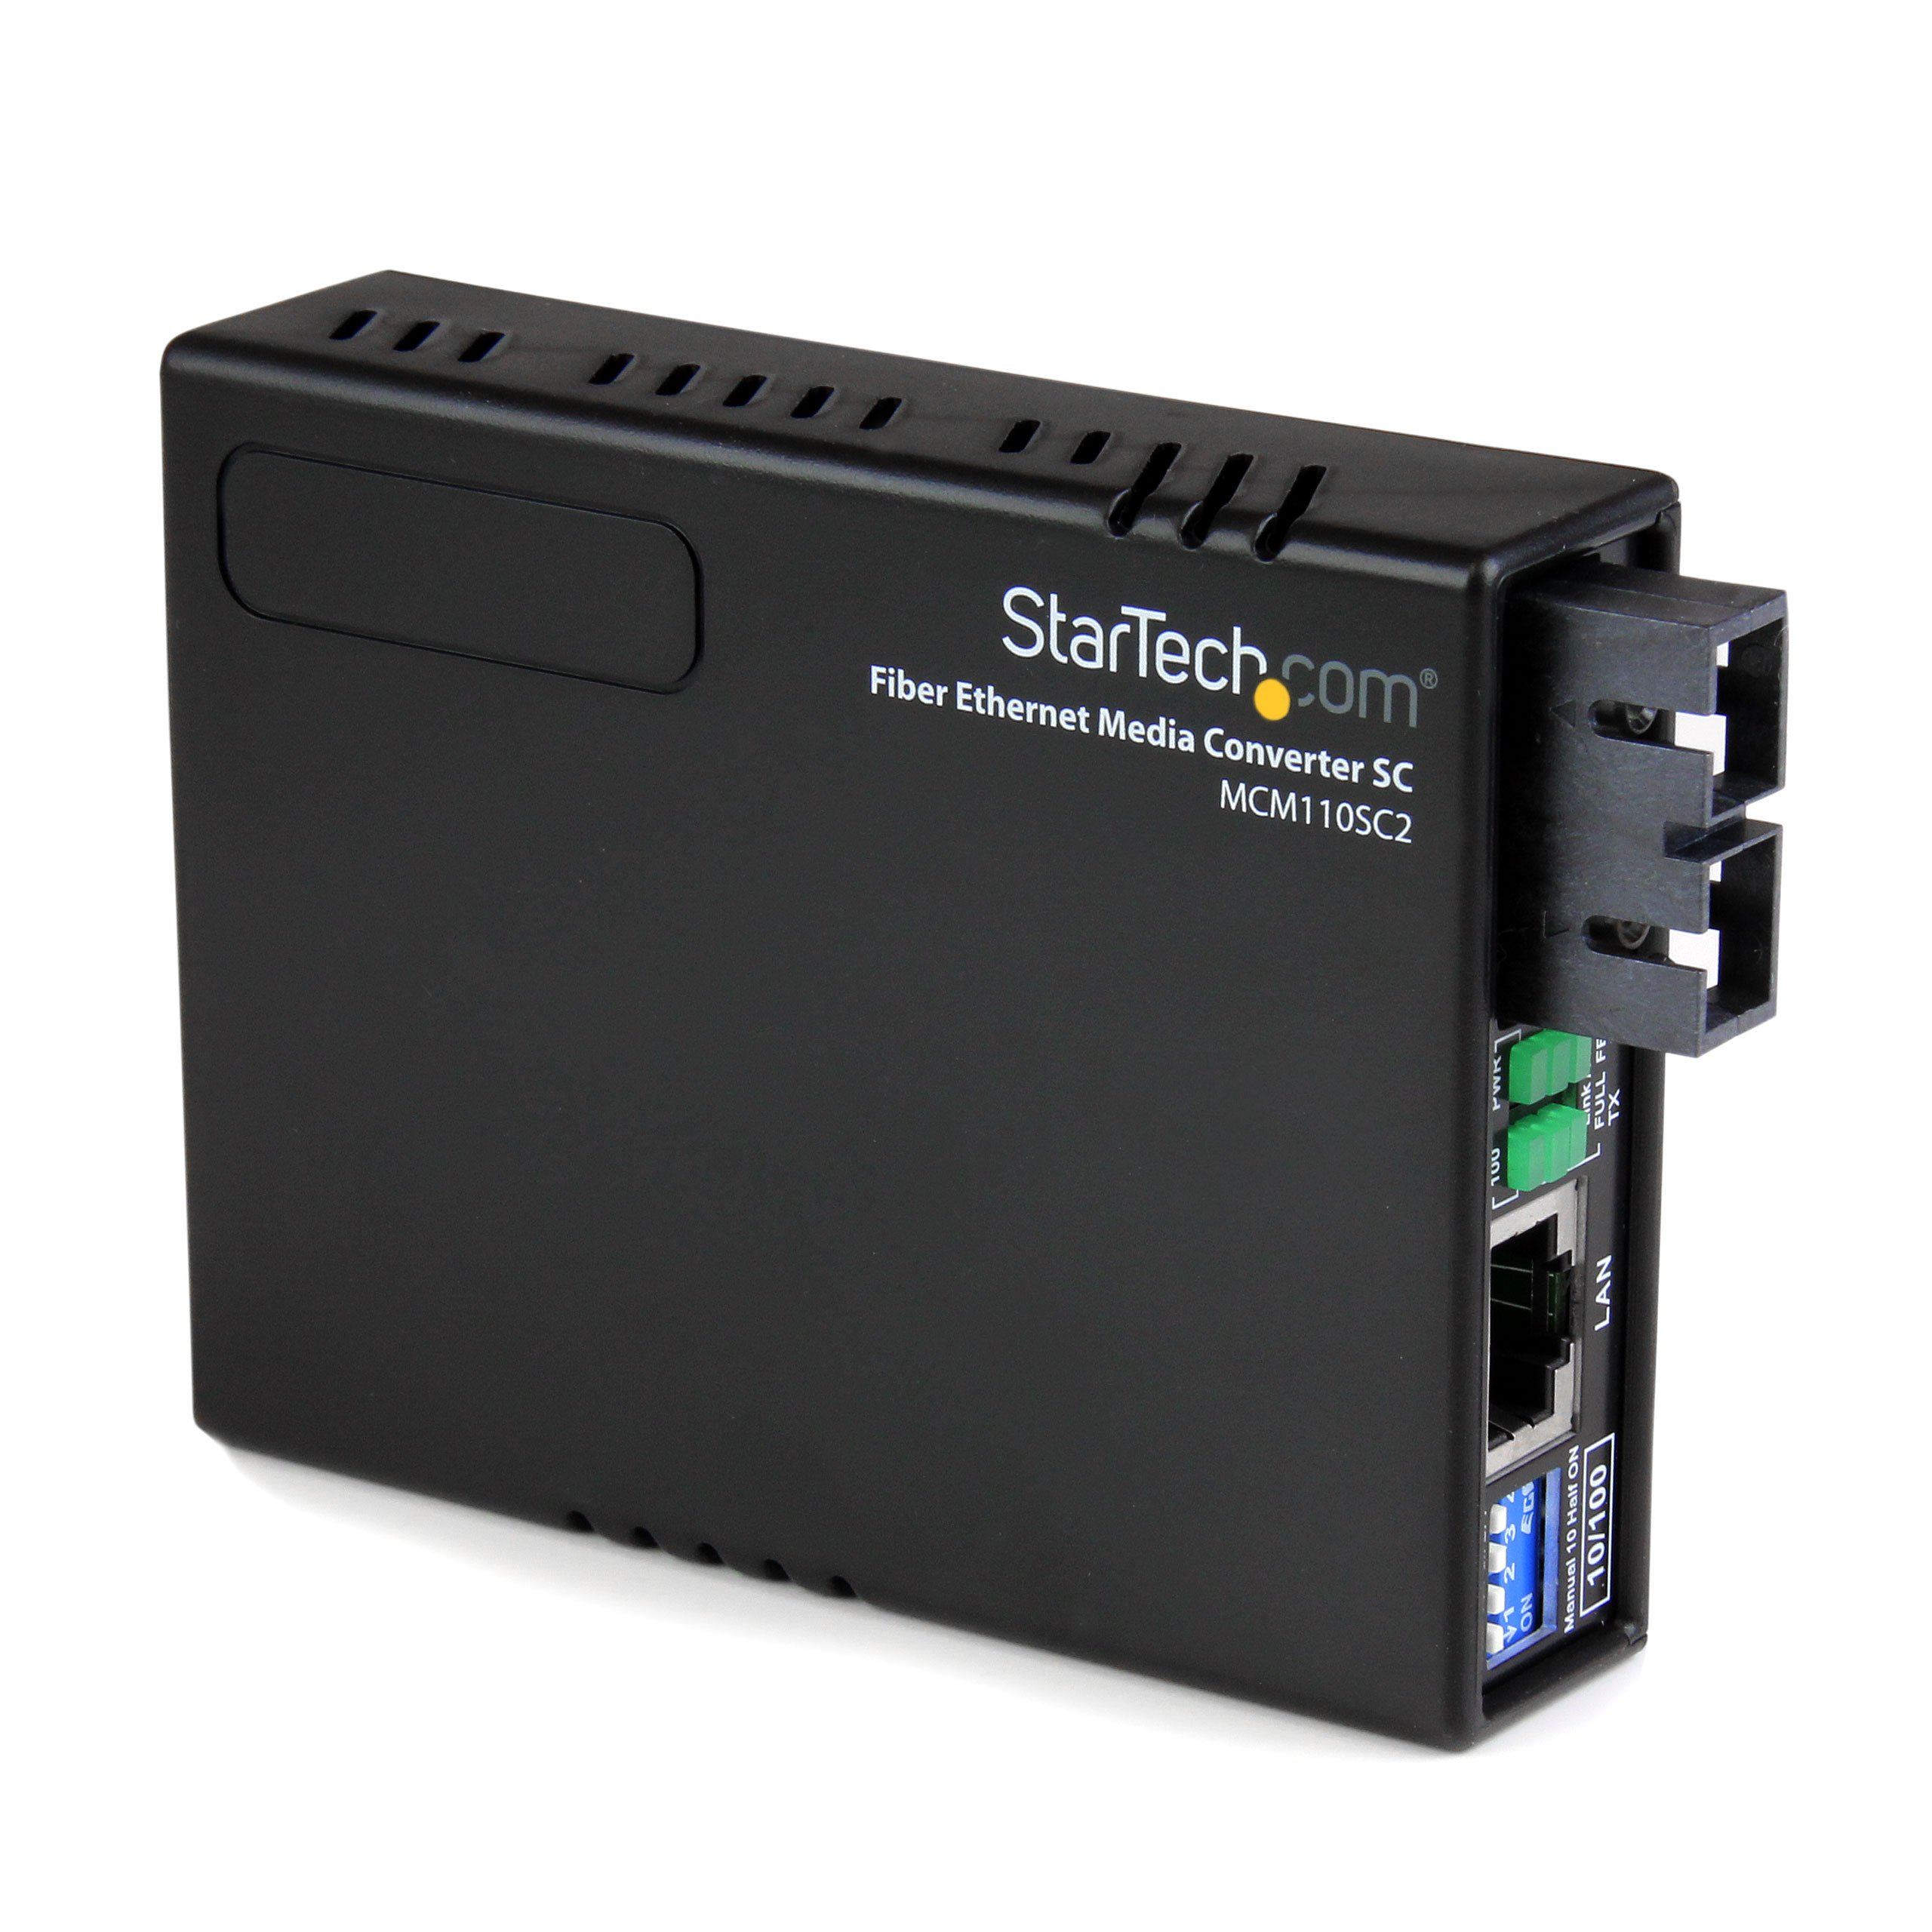 StarTech.com 2 km Fiber Media Converter - 10/100Mbps Ethernet - Multi Mode SC Fiber - Ethernet Media Converter - (MCM110SC2) by StarTech